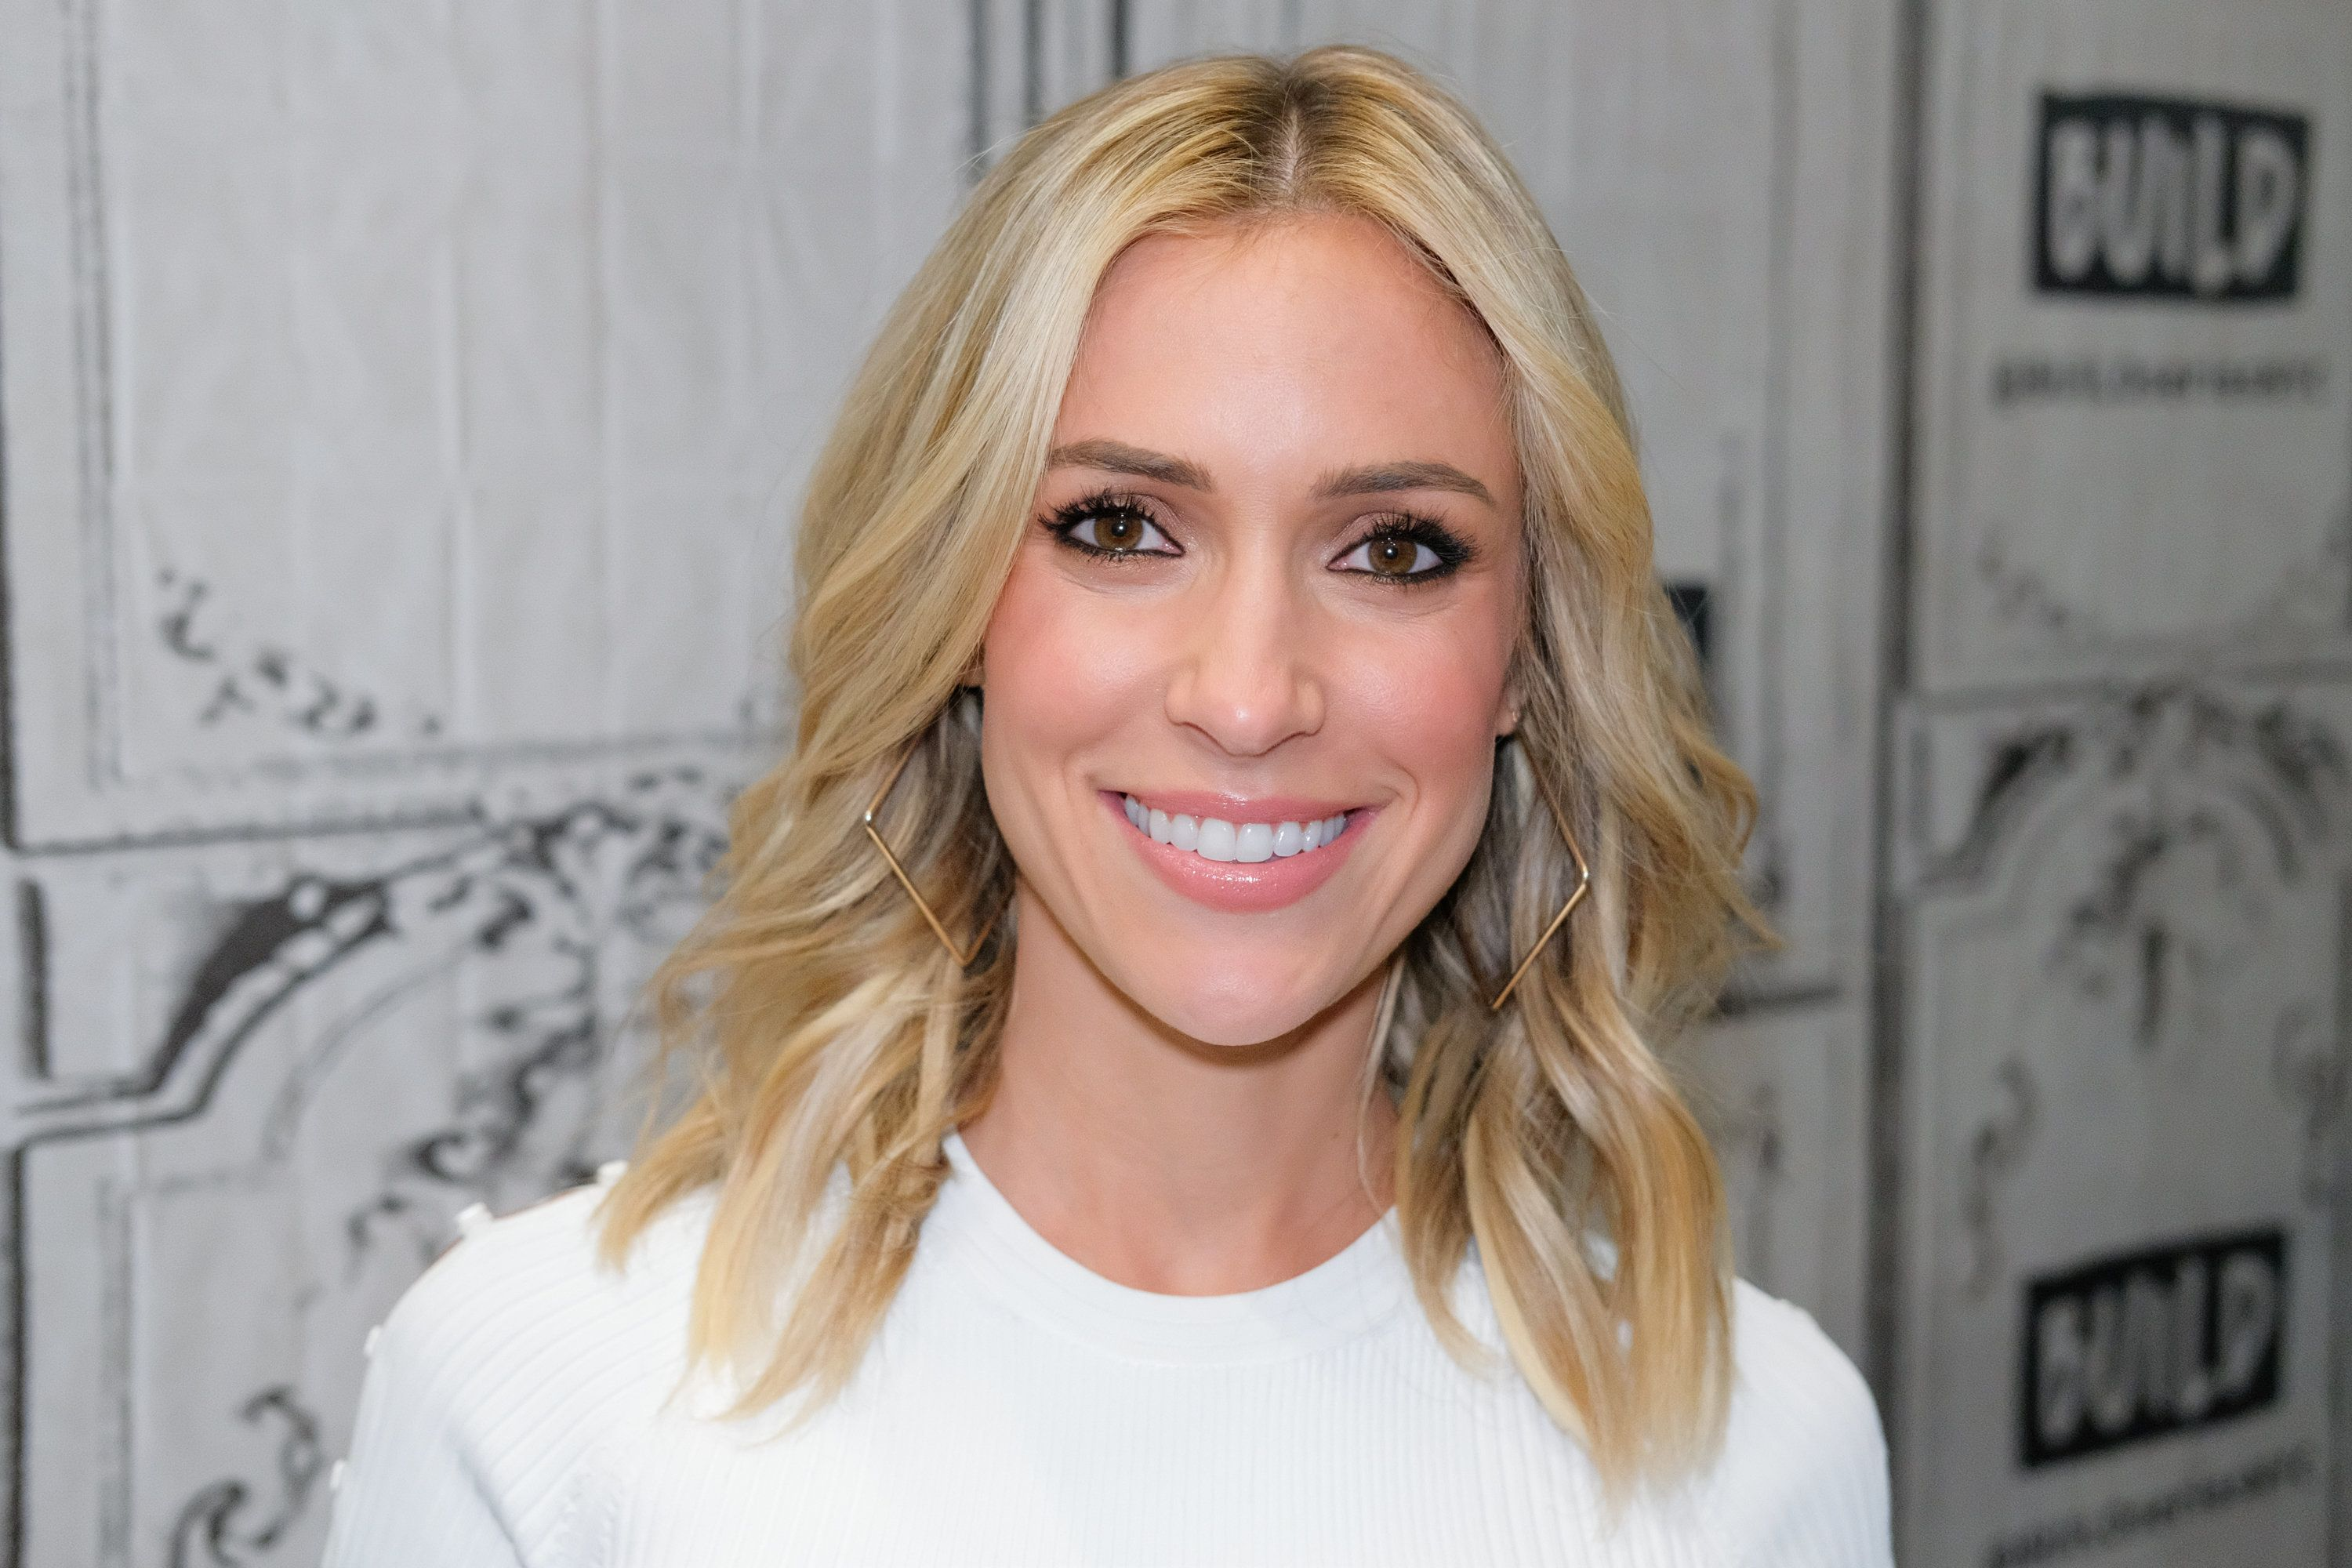 NEW YORK, NY - APRIL 03:  Kristin Cavallari visits Build Studio to discuss her new book 'True Roots' on April 3, 2018 in New York City.  (Photo by Matthew Eisman/Getty Images)